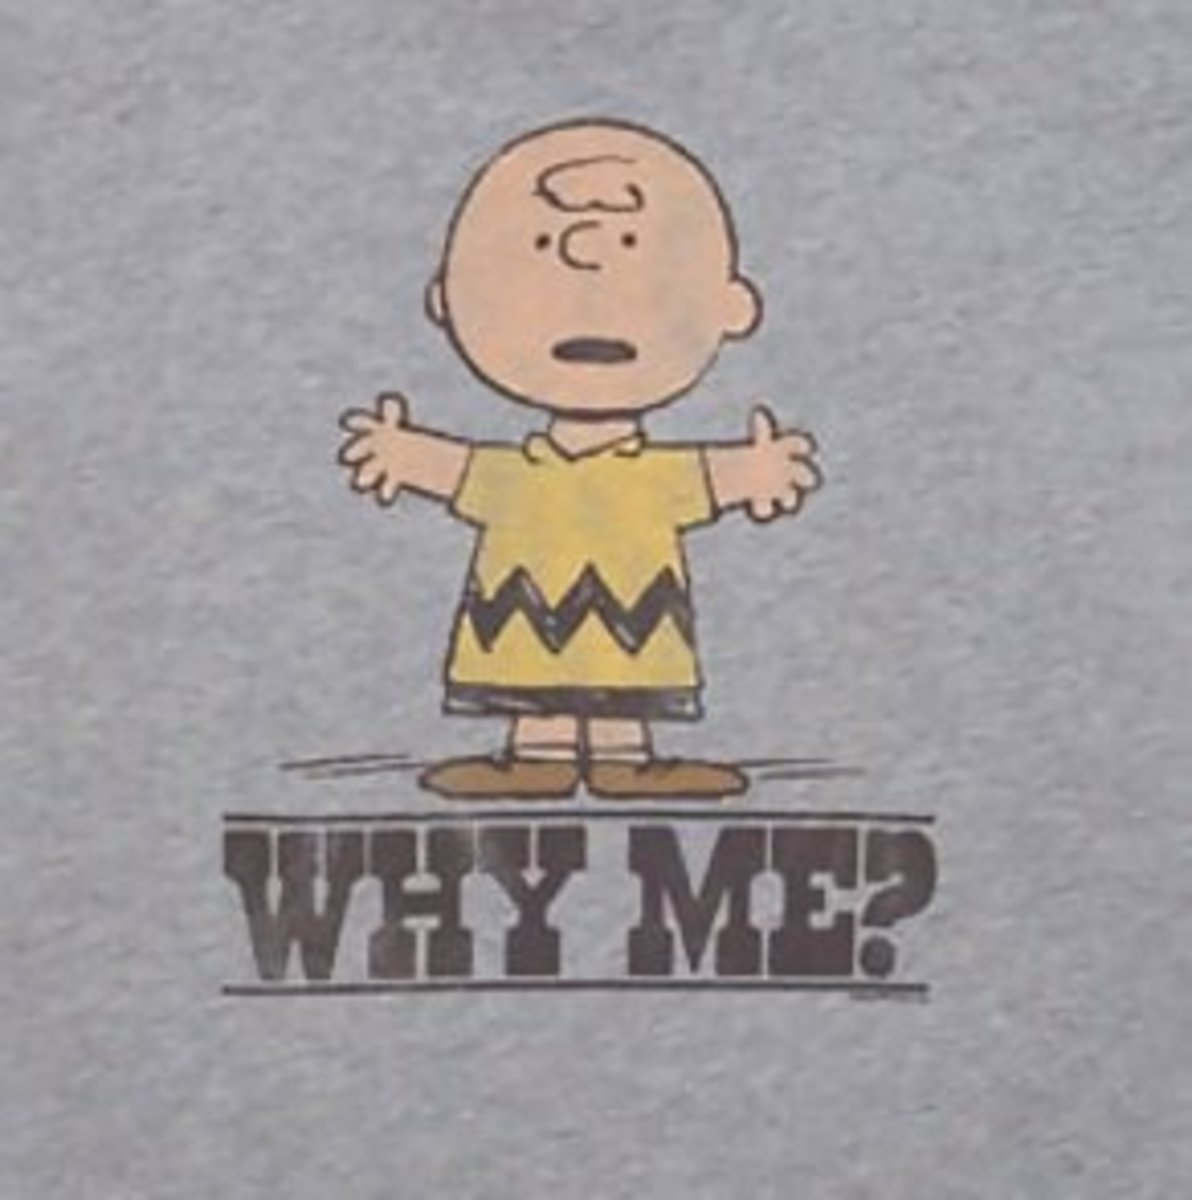 Charlie Brown had legitimate grievances but you don't, so keep it to yourself.